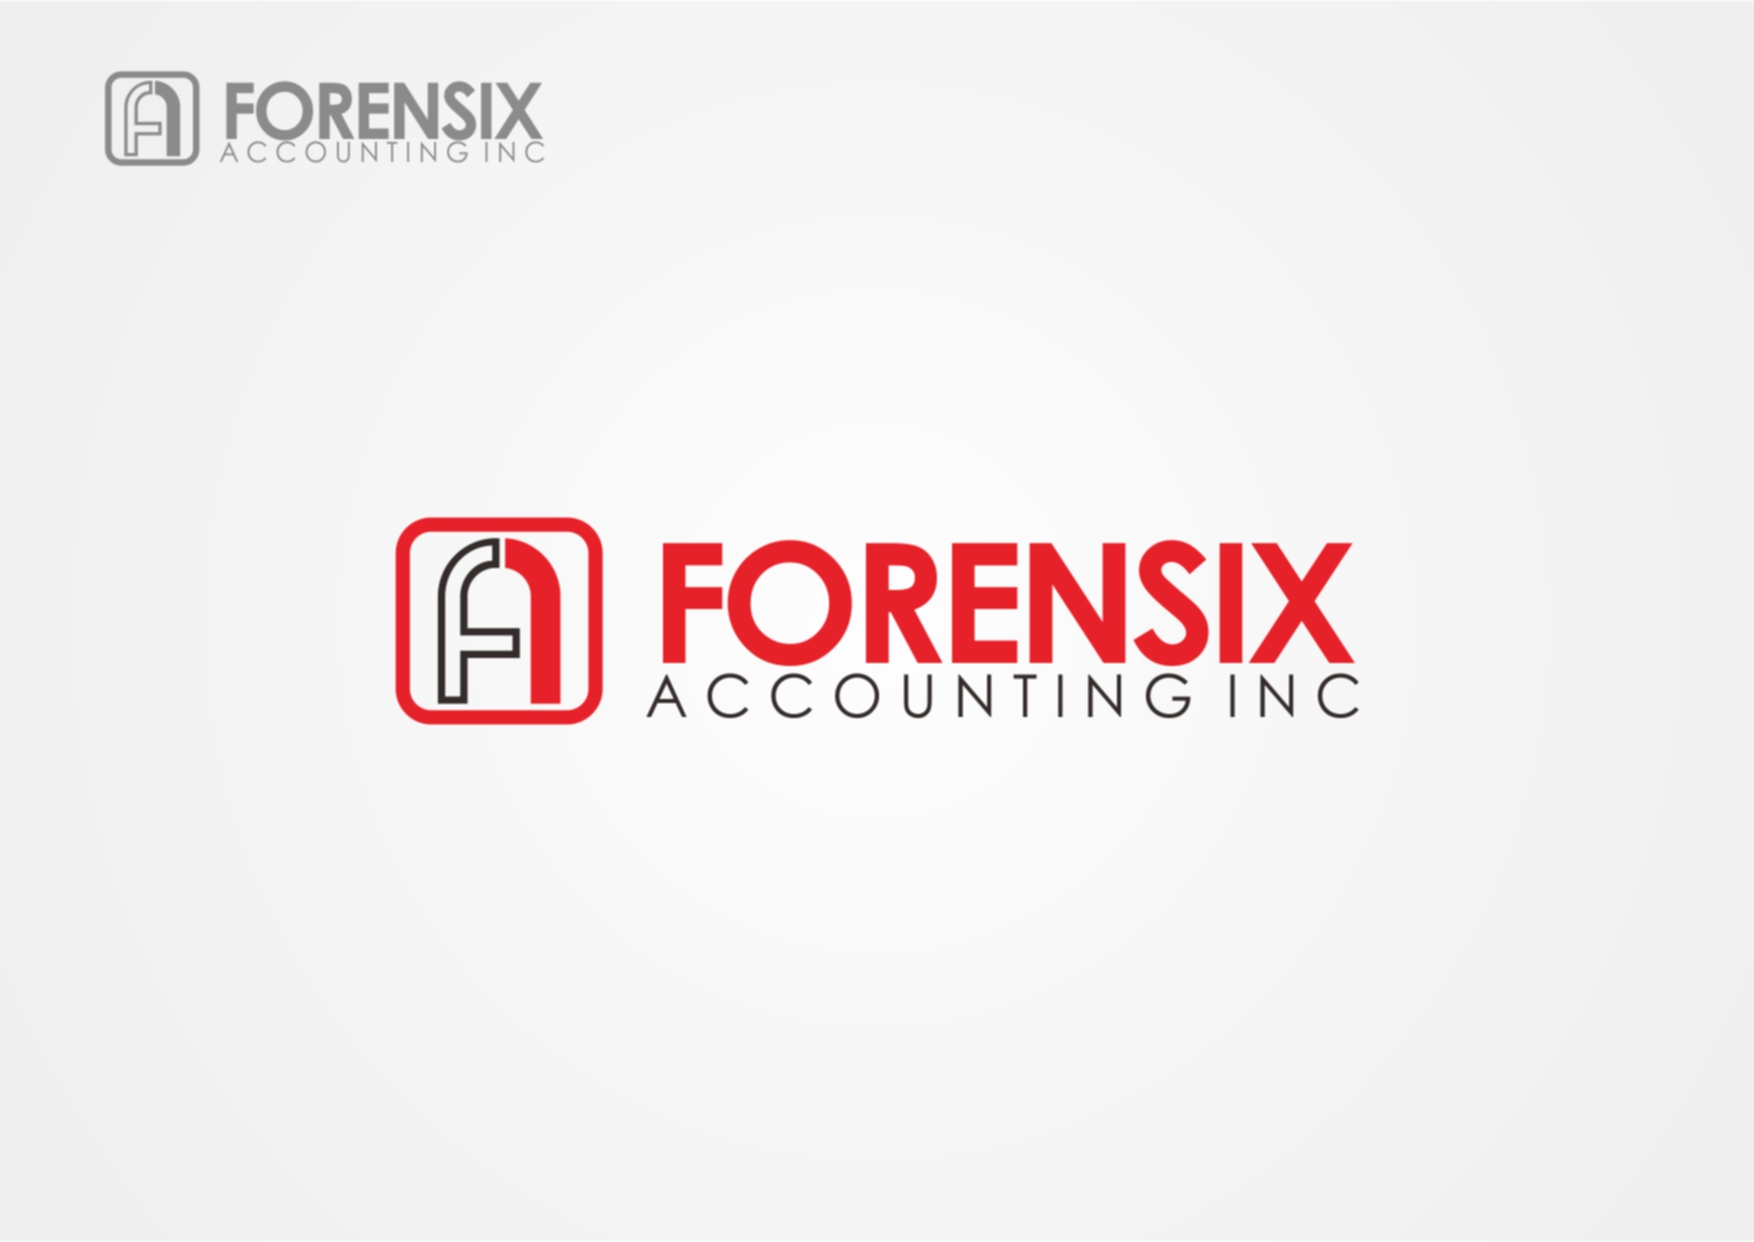 Logo Design by Private User - Entry No. 4 in the Logo Design Contest FORENSIX ACCOUNTING INC. Logo Design.